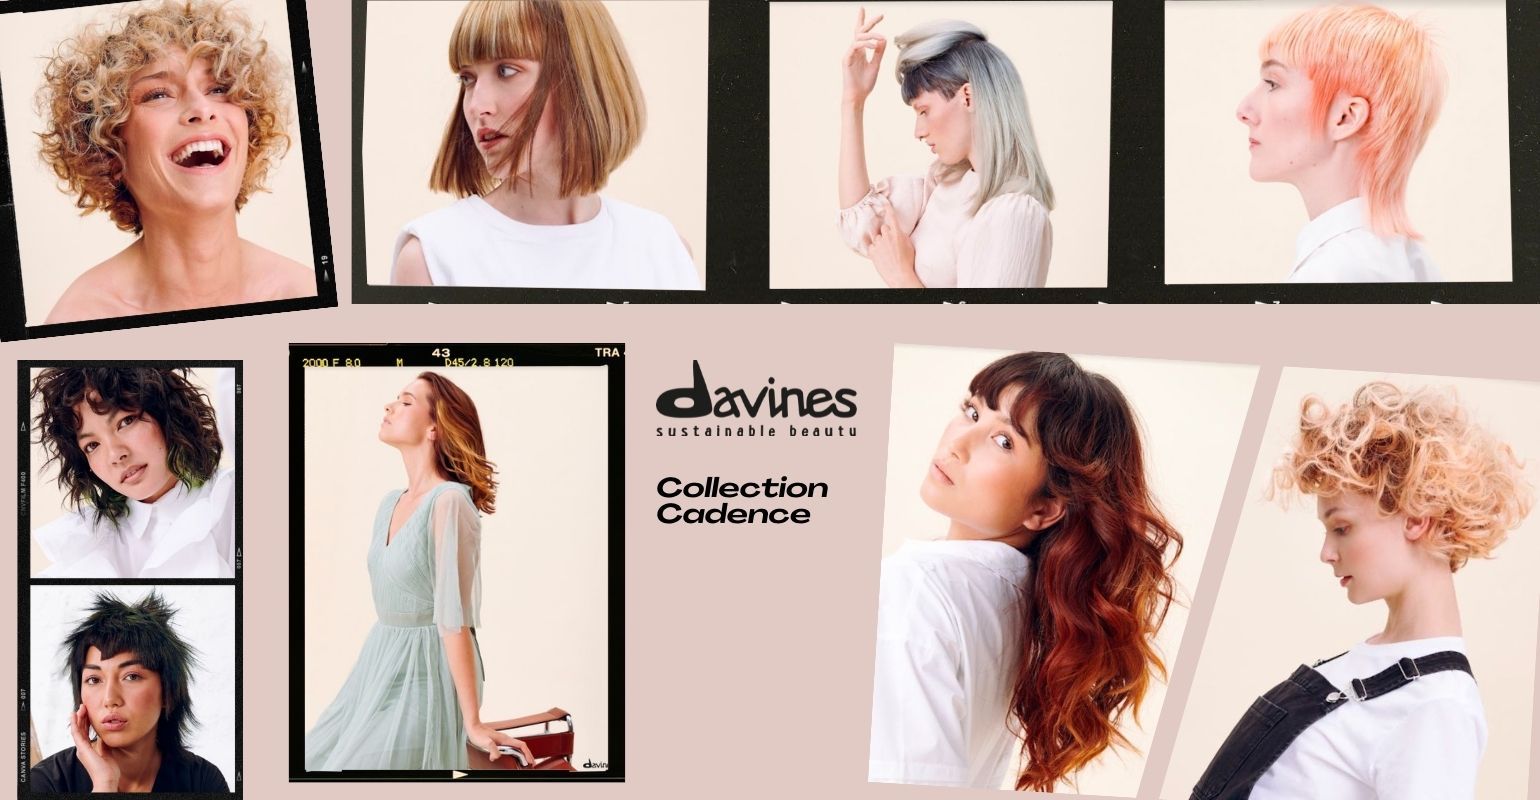 COLLECTION CADENCE DAVINES AVEC PHILIPPE TAPPREST